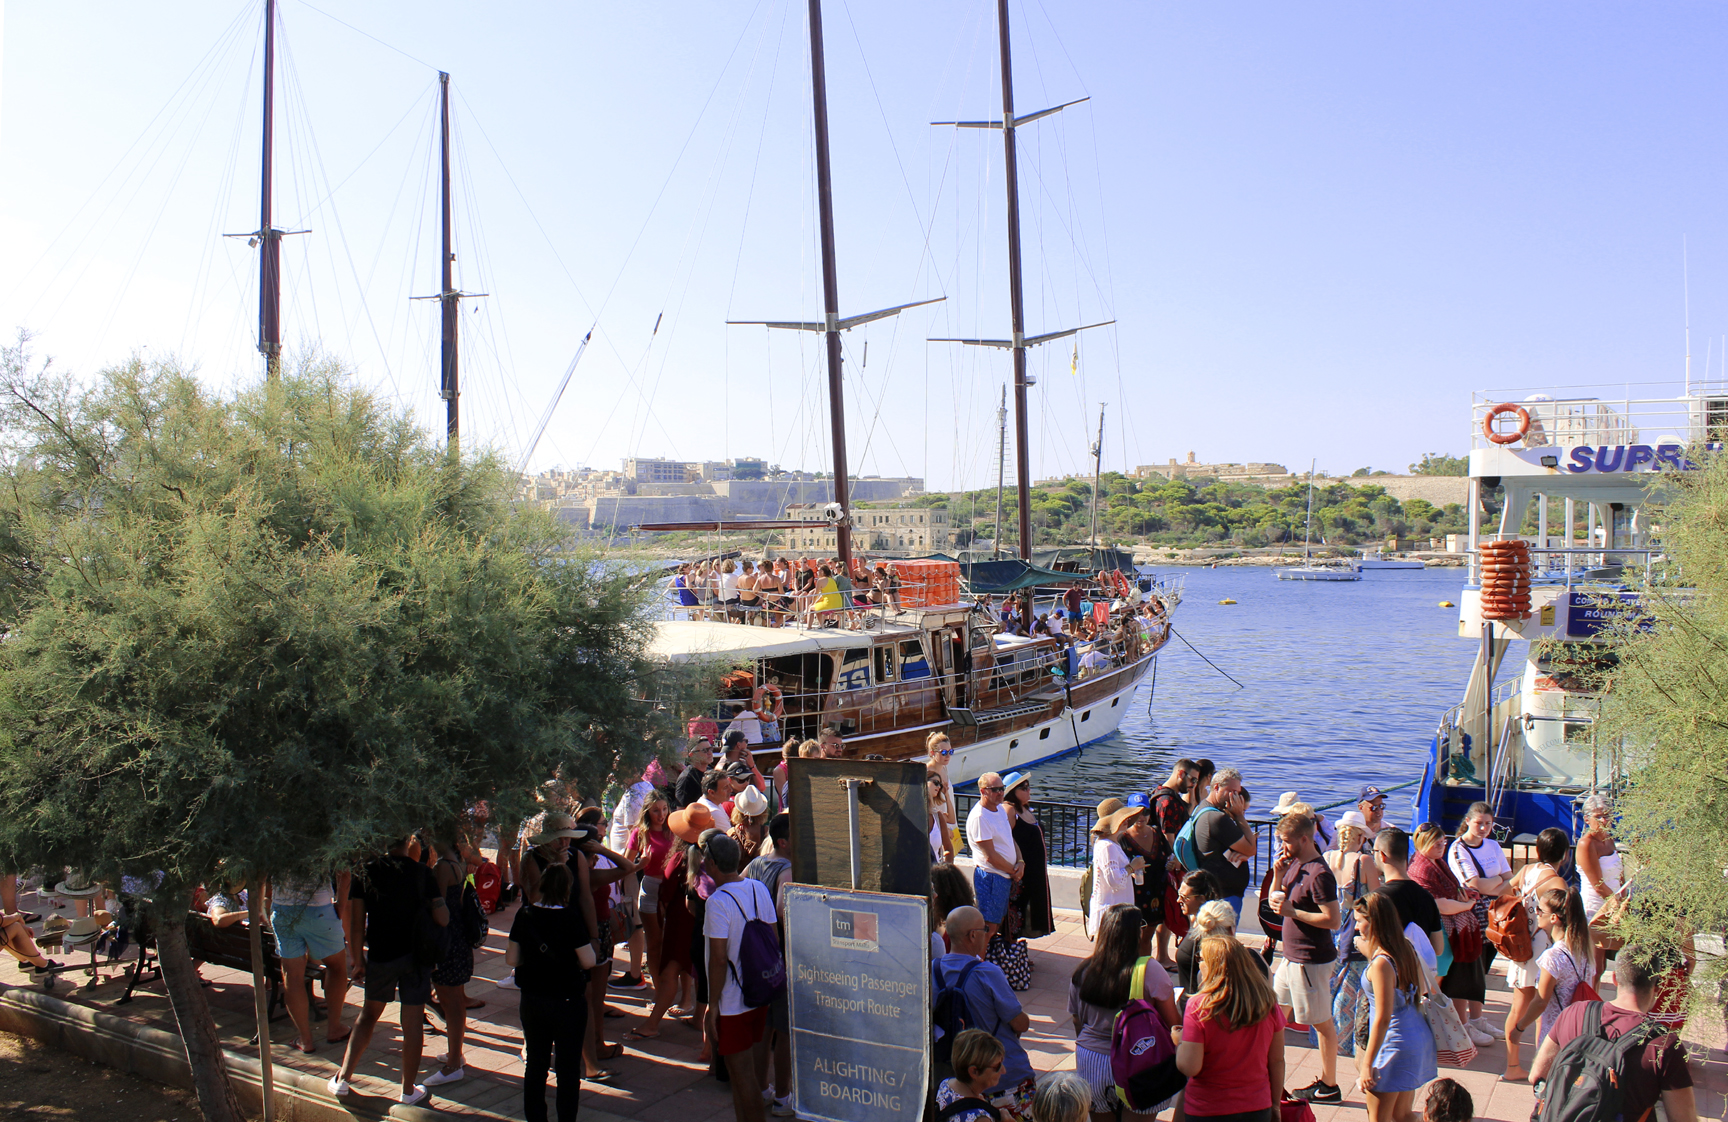 Hera Cruise's boat, Hera, loaded and ready to tour the Maltese Islands. Photo: Mary Charlebois